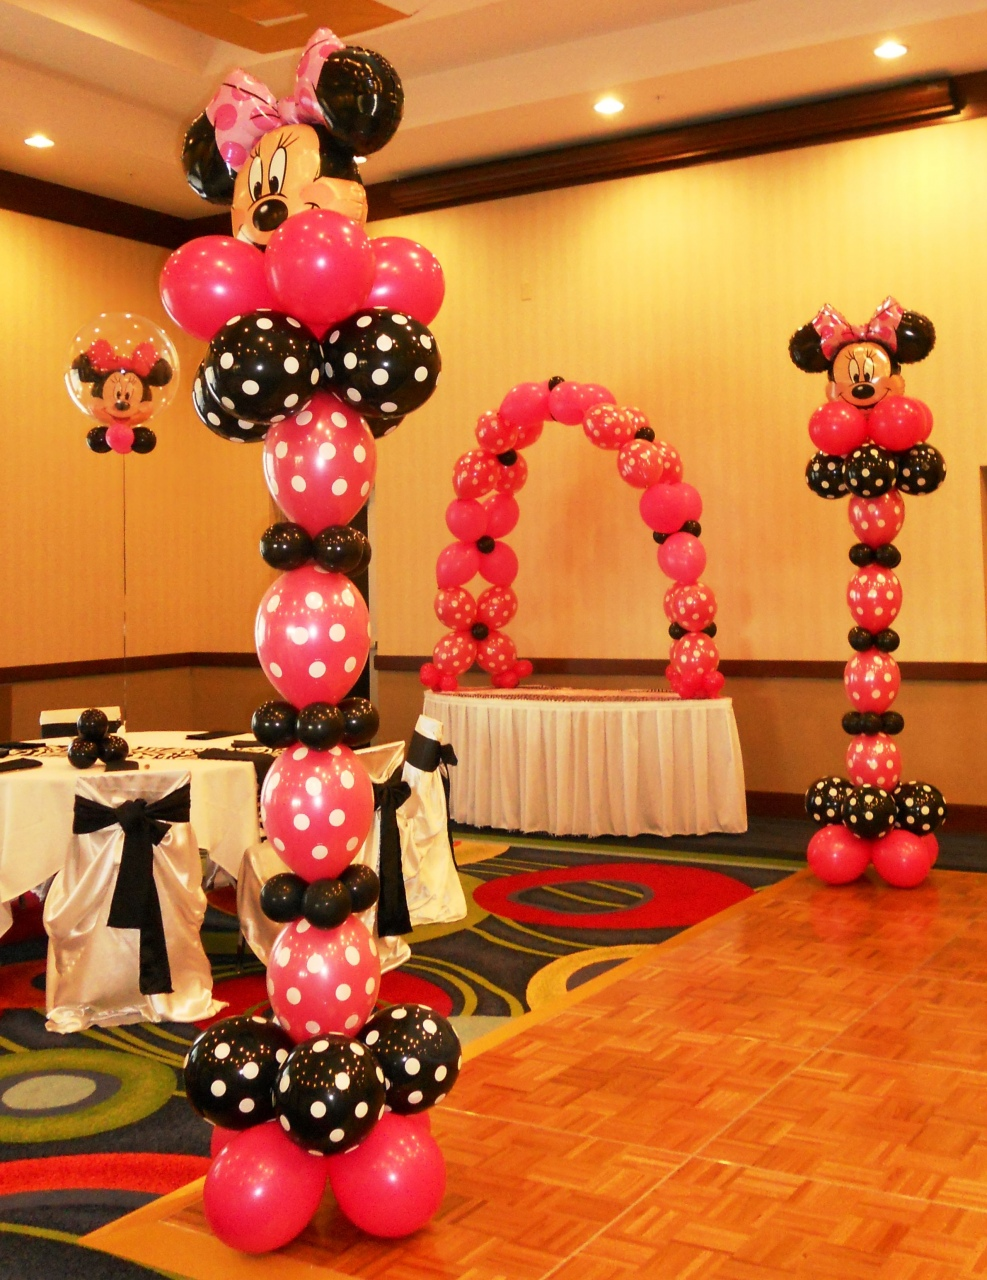 Mickey Mouse Balloon Sculpture Minnie Mouse Party Balloon Decor 3